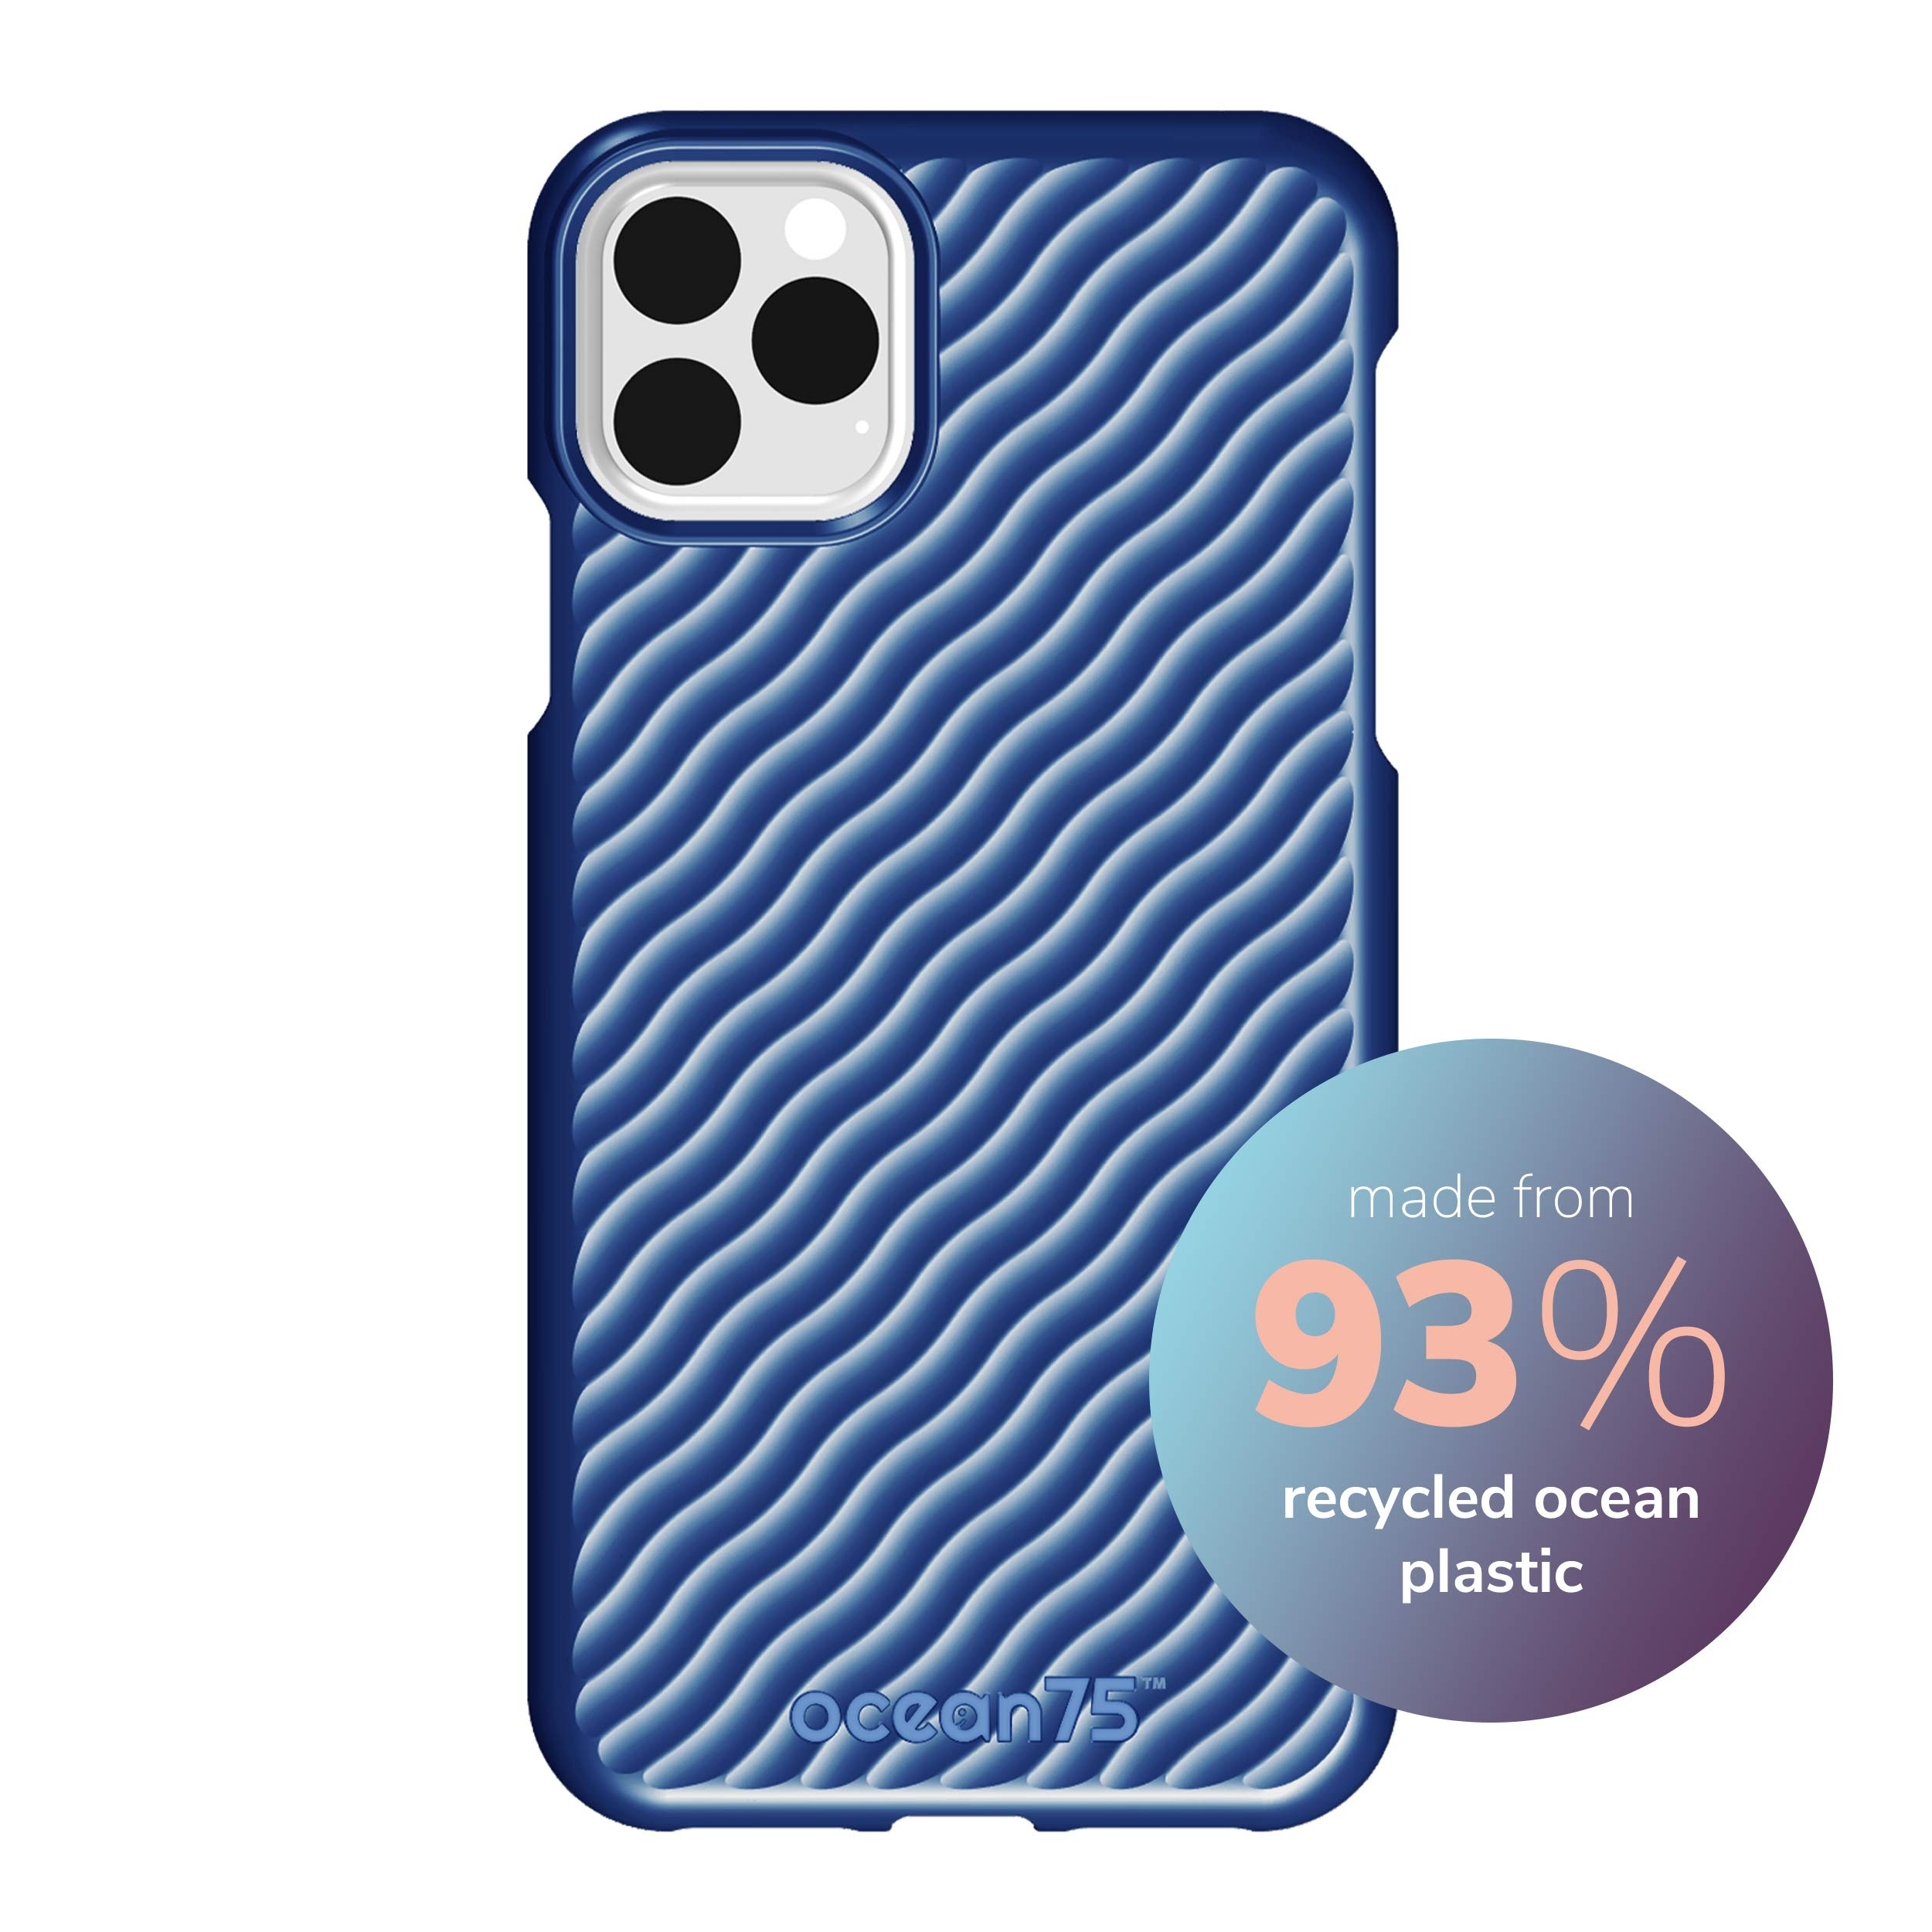 Ocean75 Eco-Friendly Designed for iPhone 11 Pro Max Case, Ocean-Inspired Sustainable Phone Cover Made from Recycled Fishing Nets – Ocean Blue